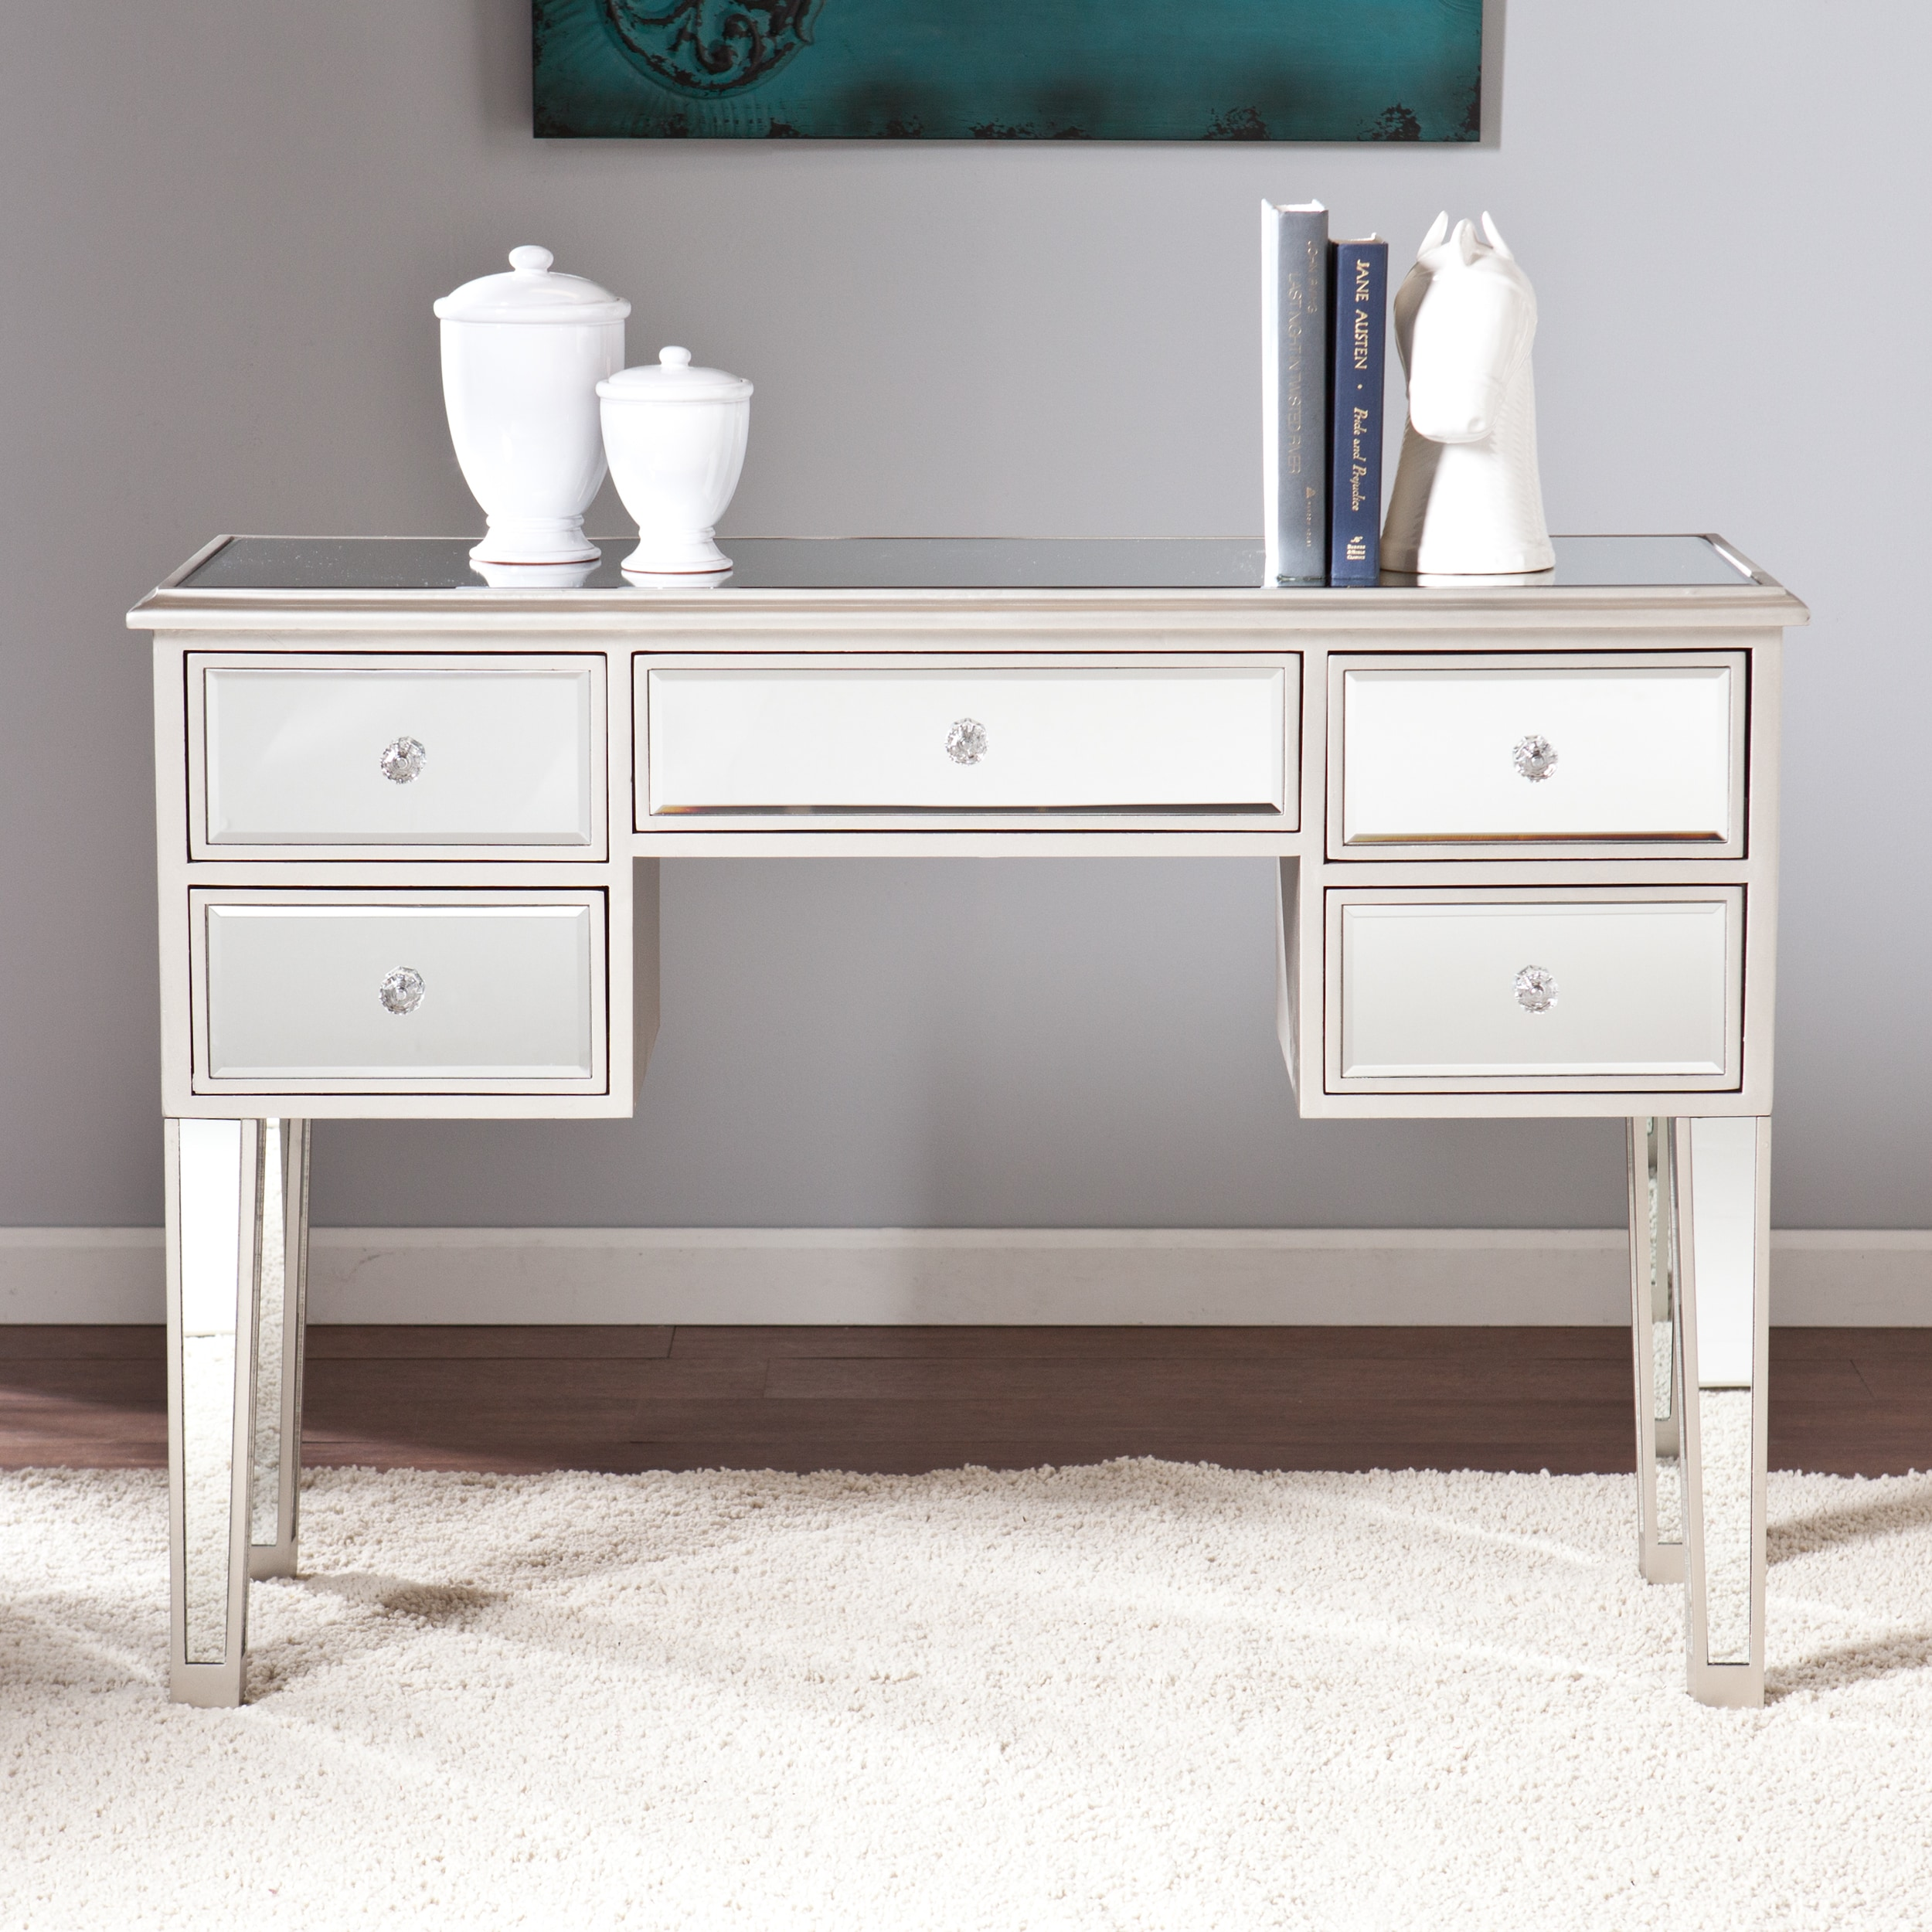 Silver Orchid Olivia Mirrored Console Table